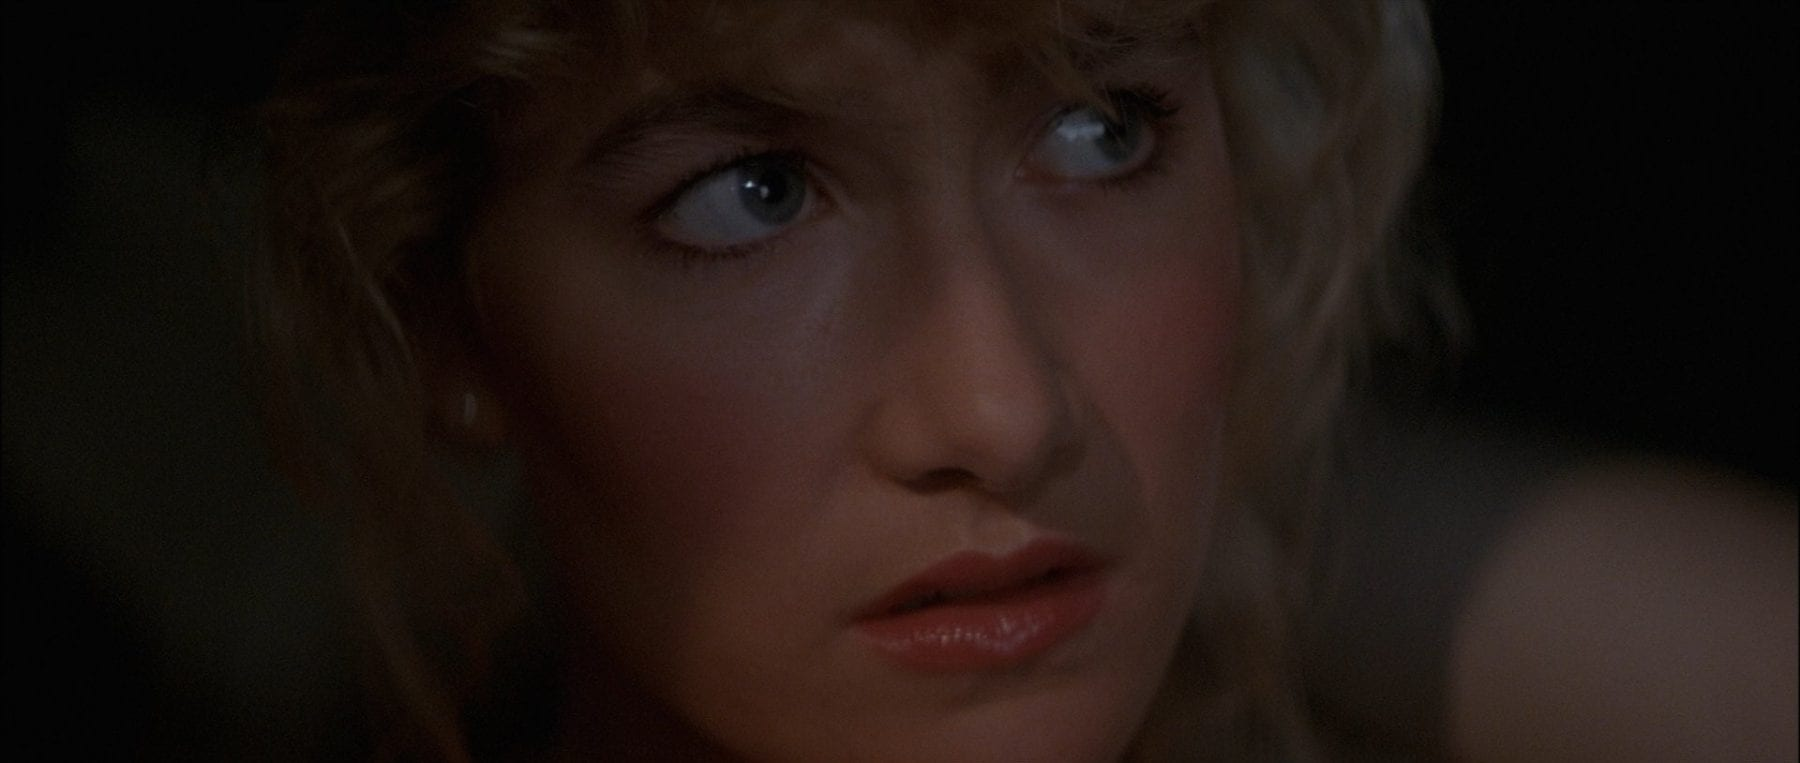 Laura Dern as Sandy Williams in Blue Velvet